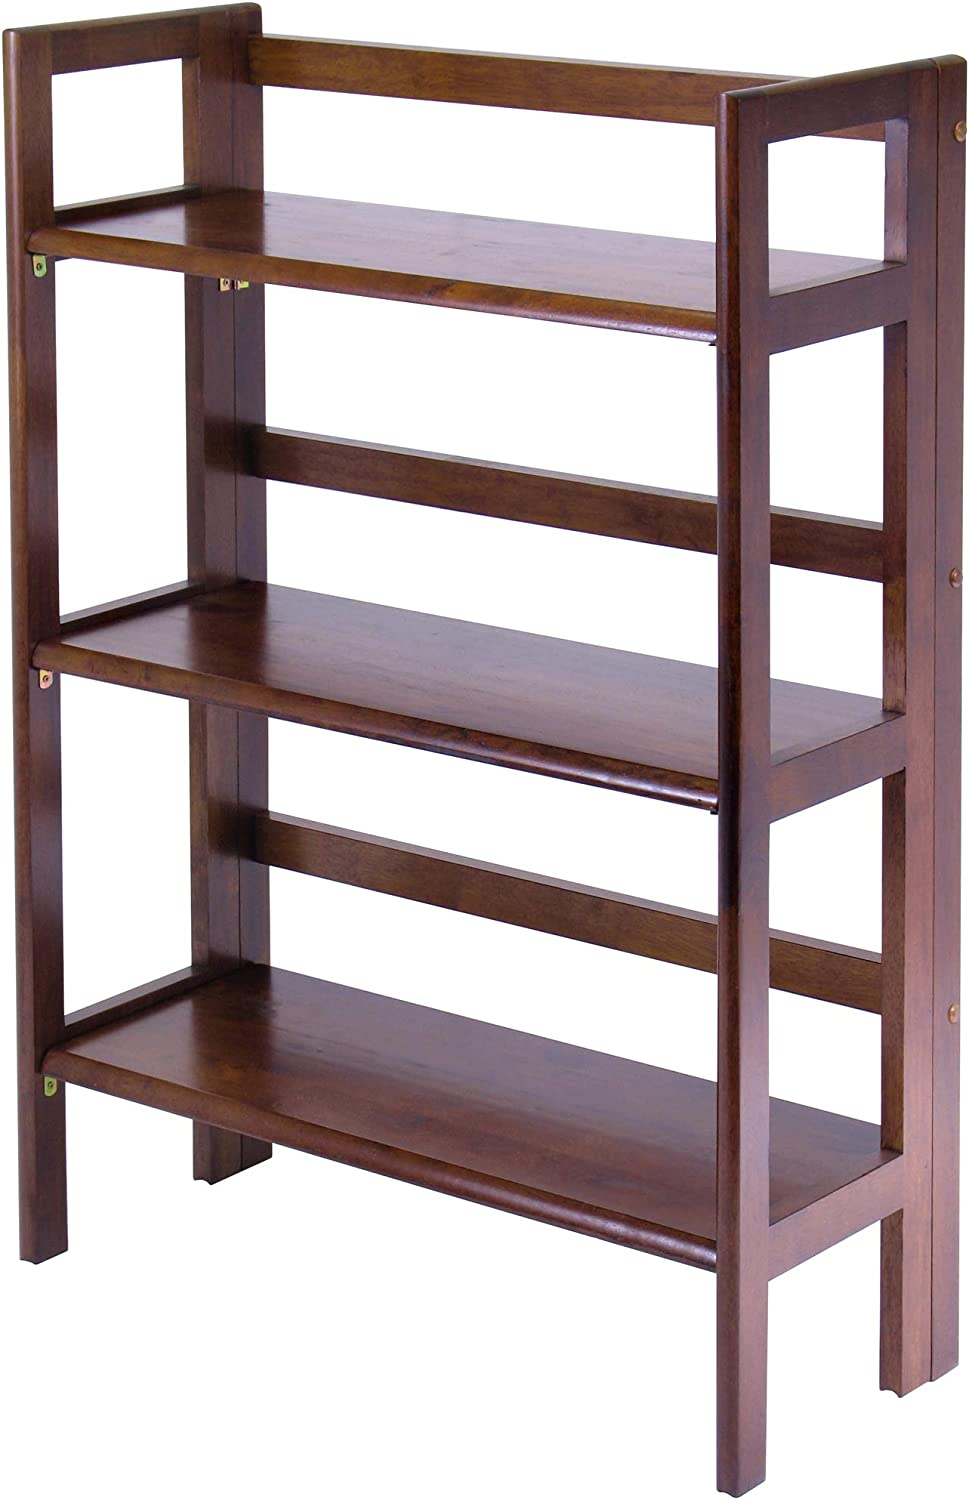 Winsome Wood Terry Shelving, Walnut